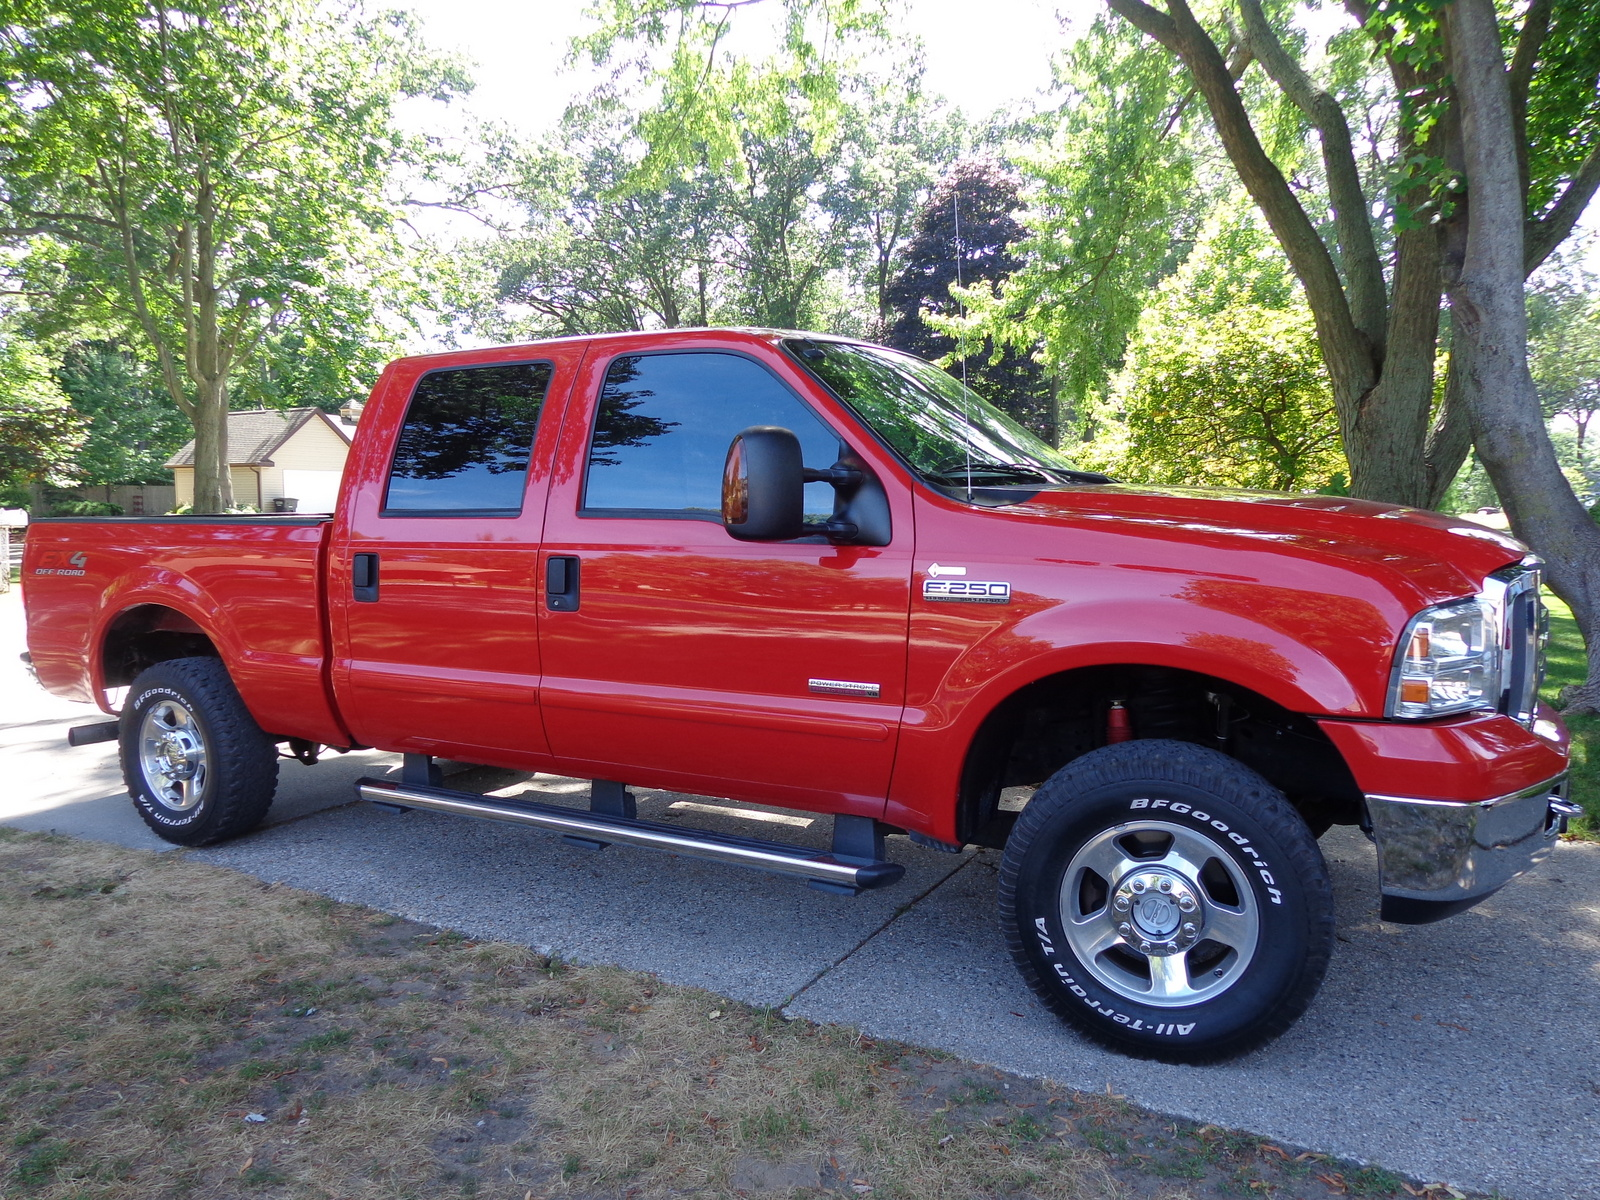 2005 Ford F-250 Super Duty - Pictures - CarGurus